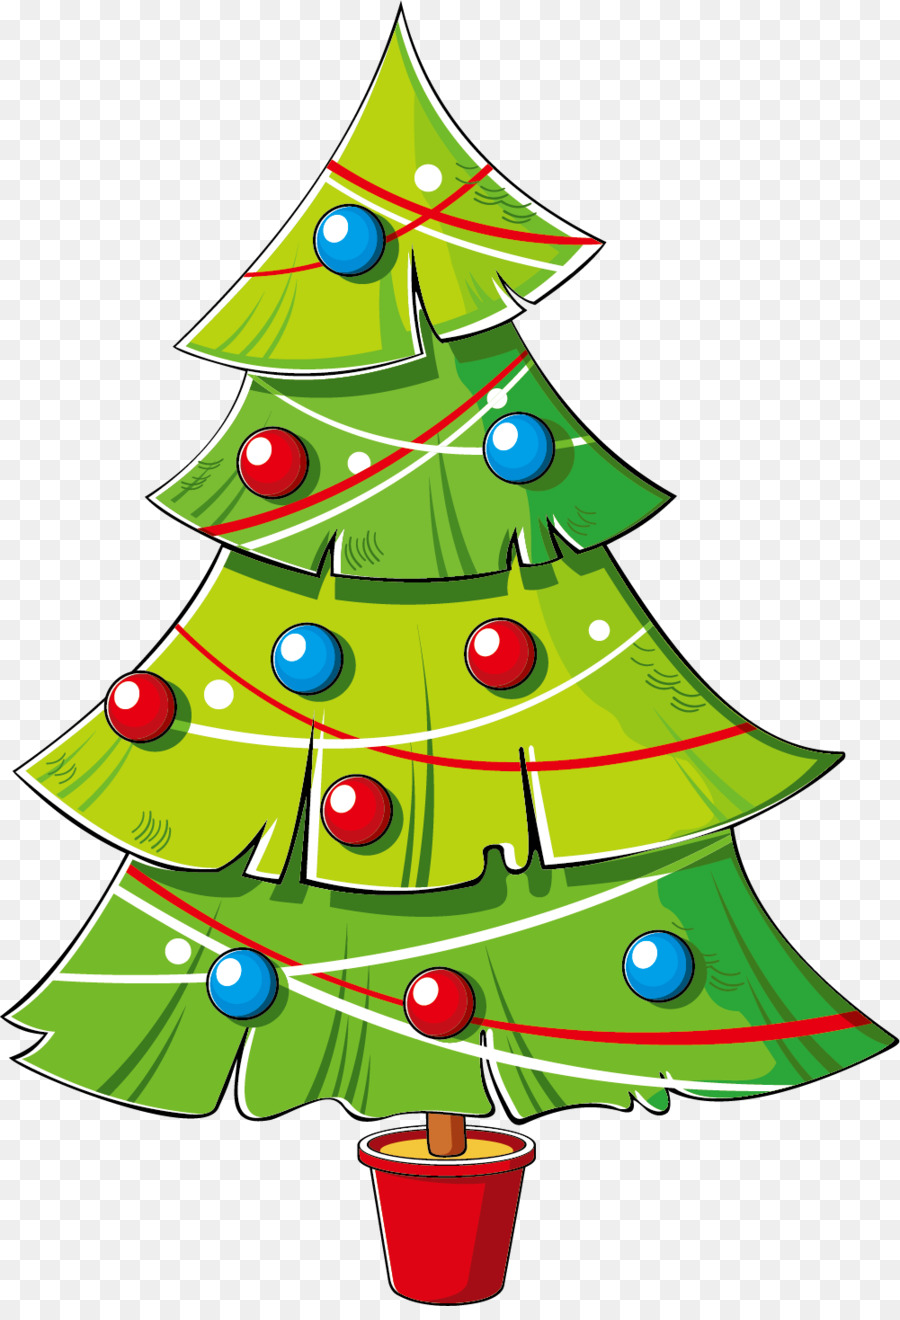 Christmas tree cartoon clipart banner black and white Christmas Tree Animation png download - 1001*1453 - Free Transparent ... banner black and white